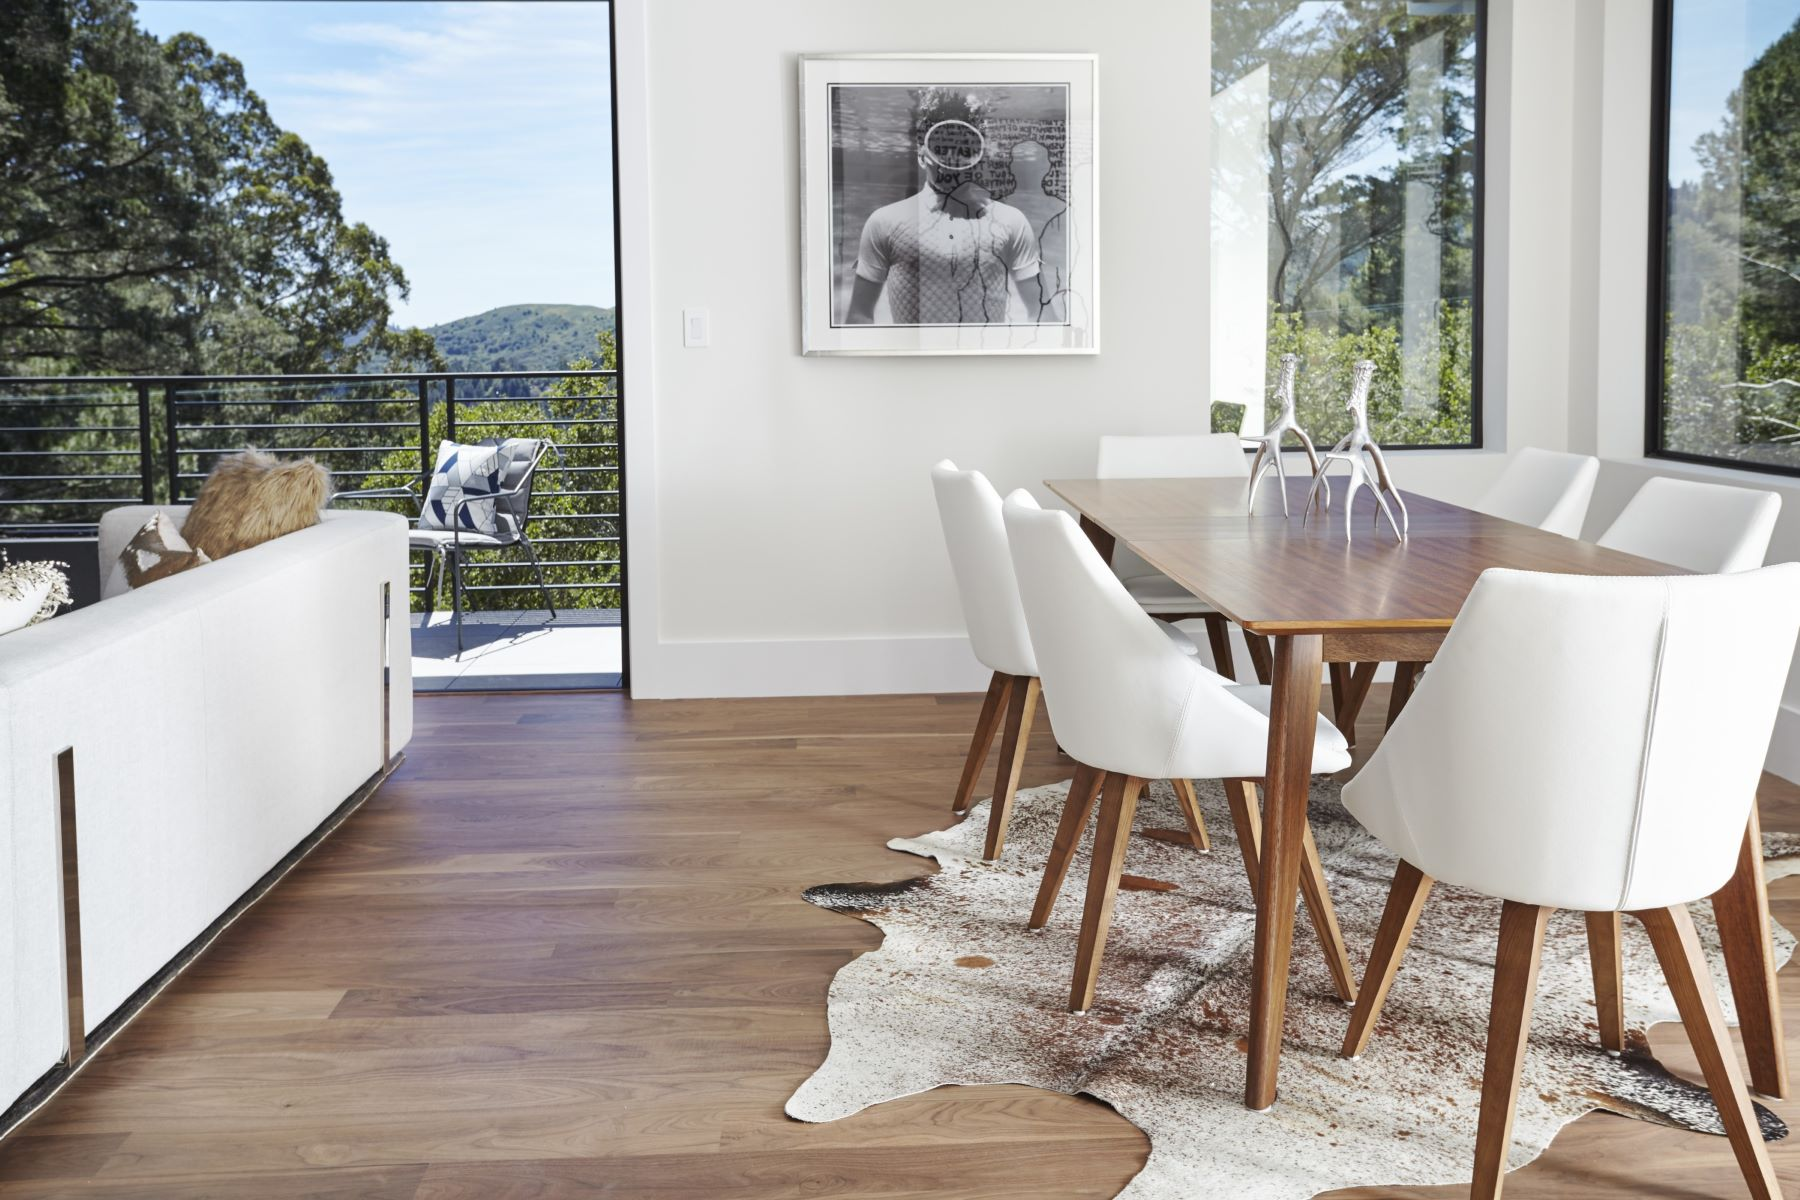 Single Family Home for Sale at New Construction in Mill Valley - a Modern Masterpiece 575 Summit Avenue Mill Valley, California 94941 United States